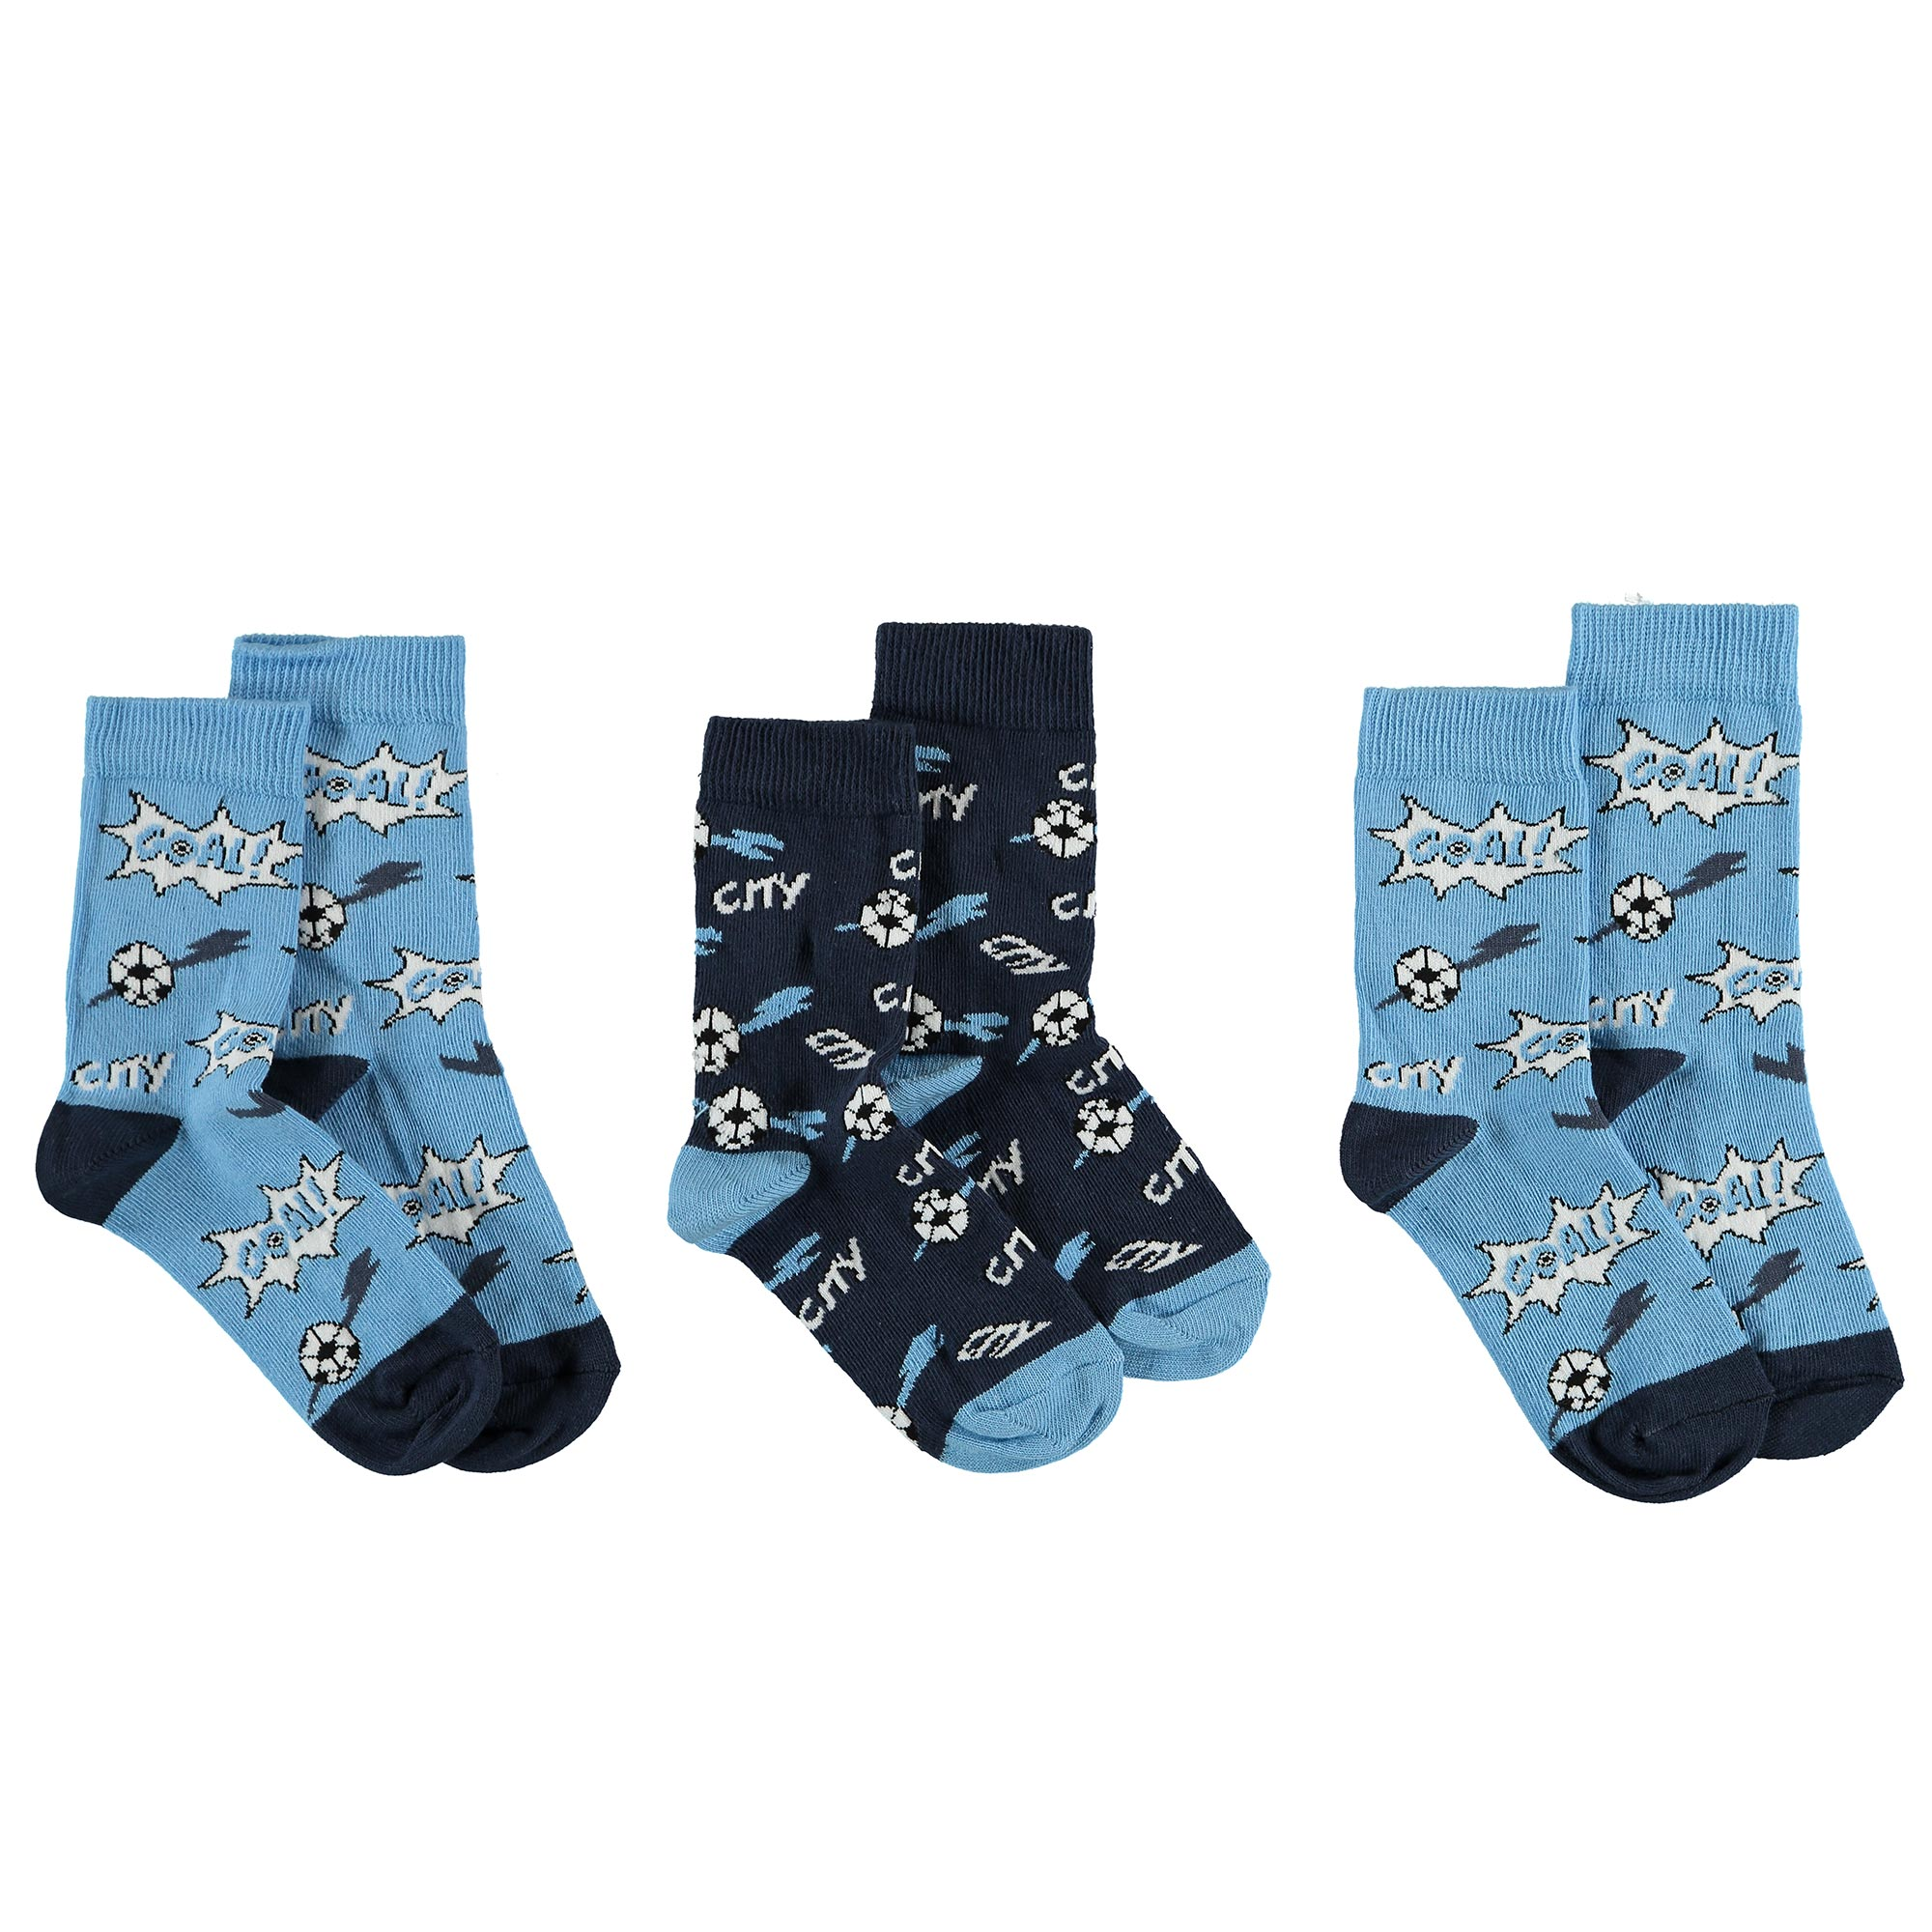 Manchester City Socks - Junior